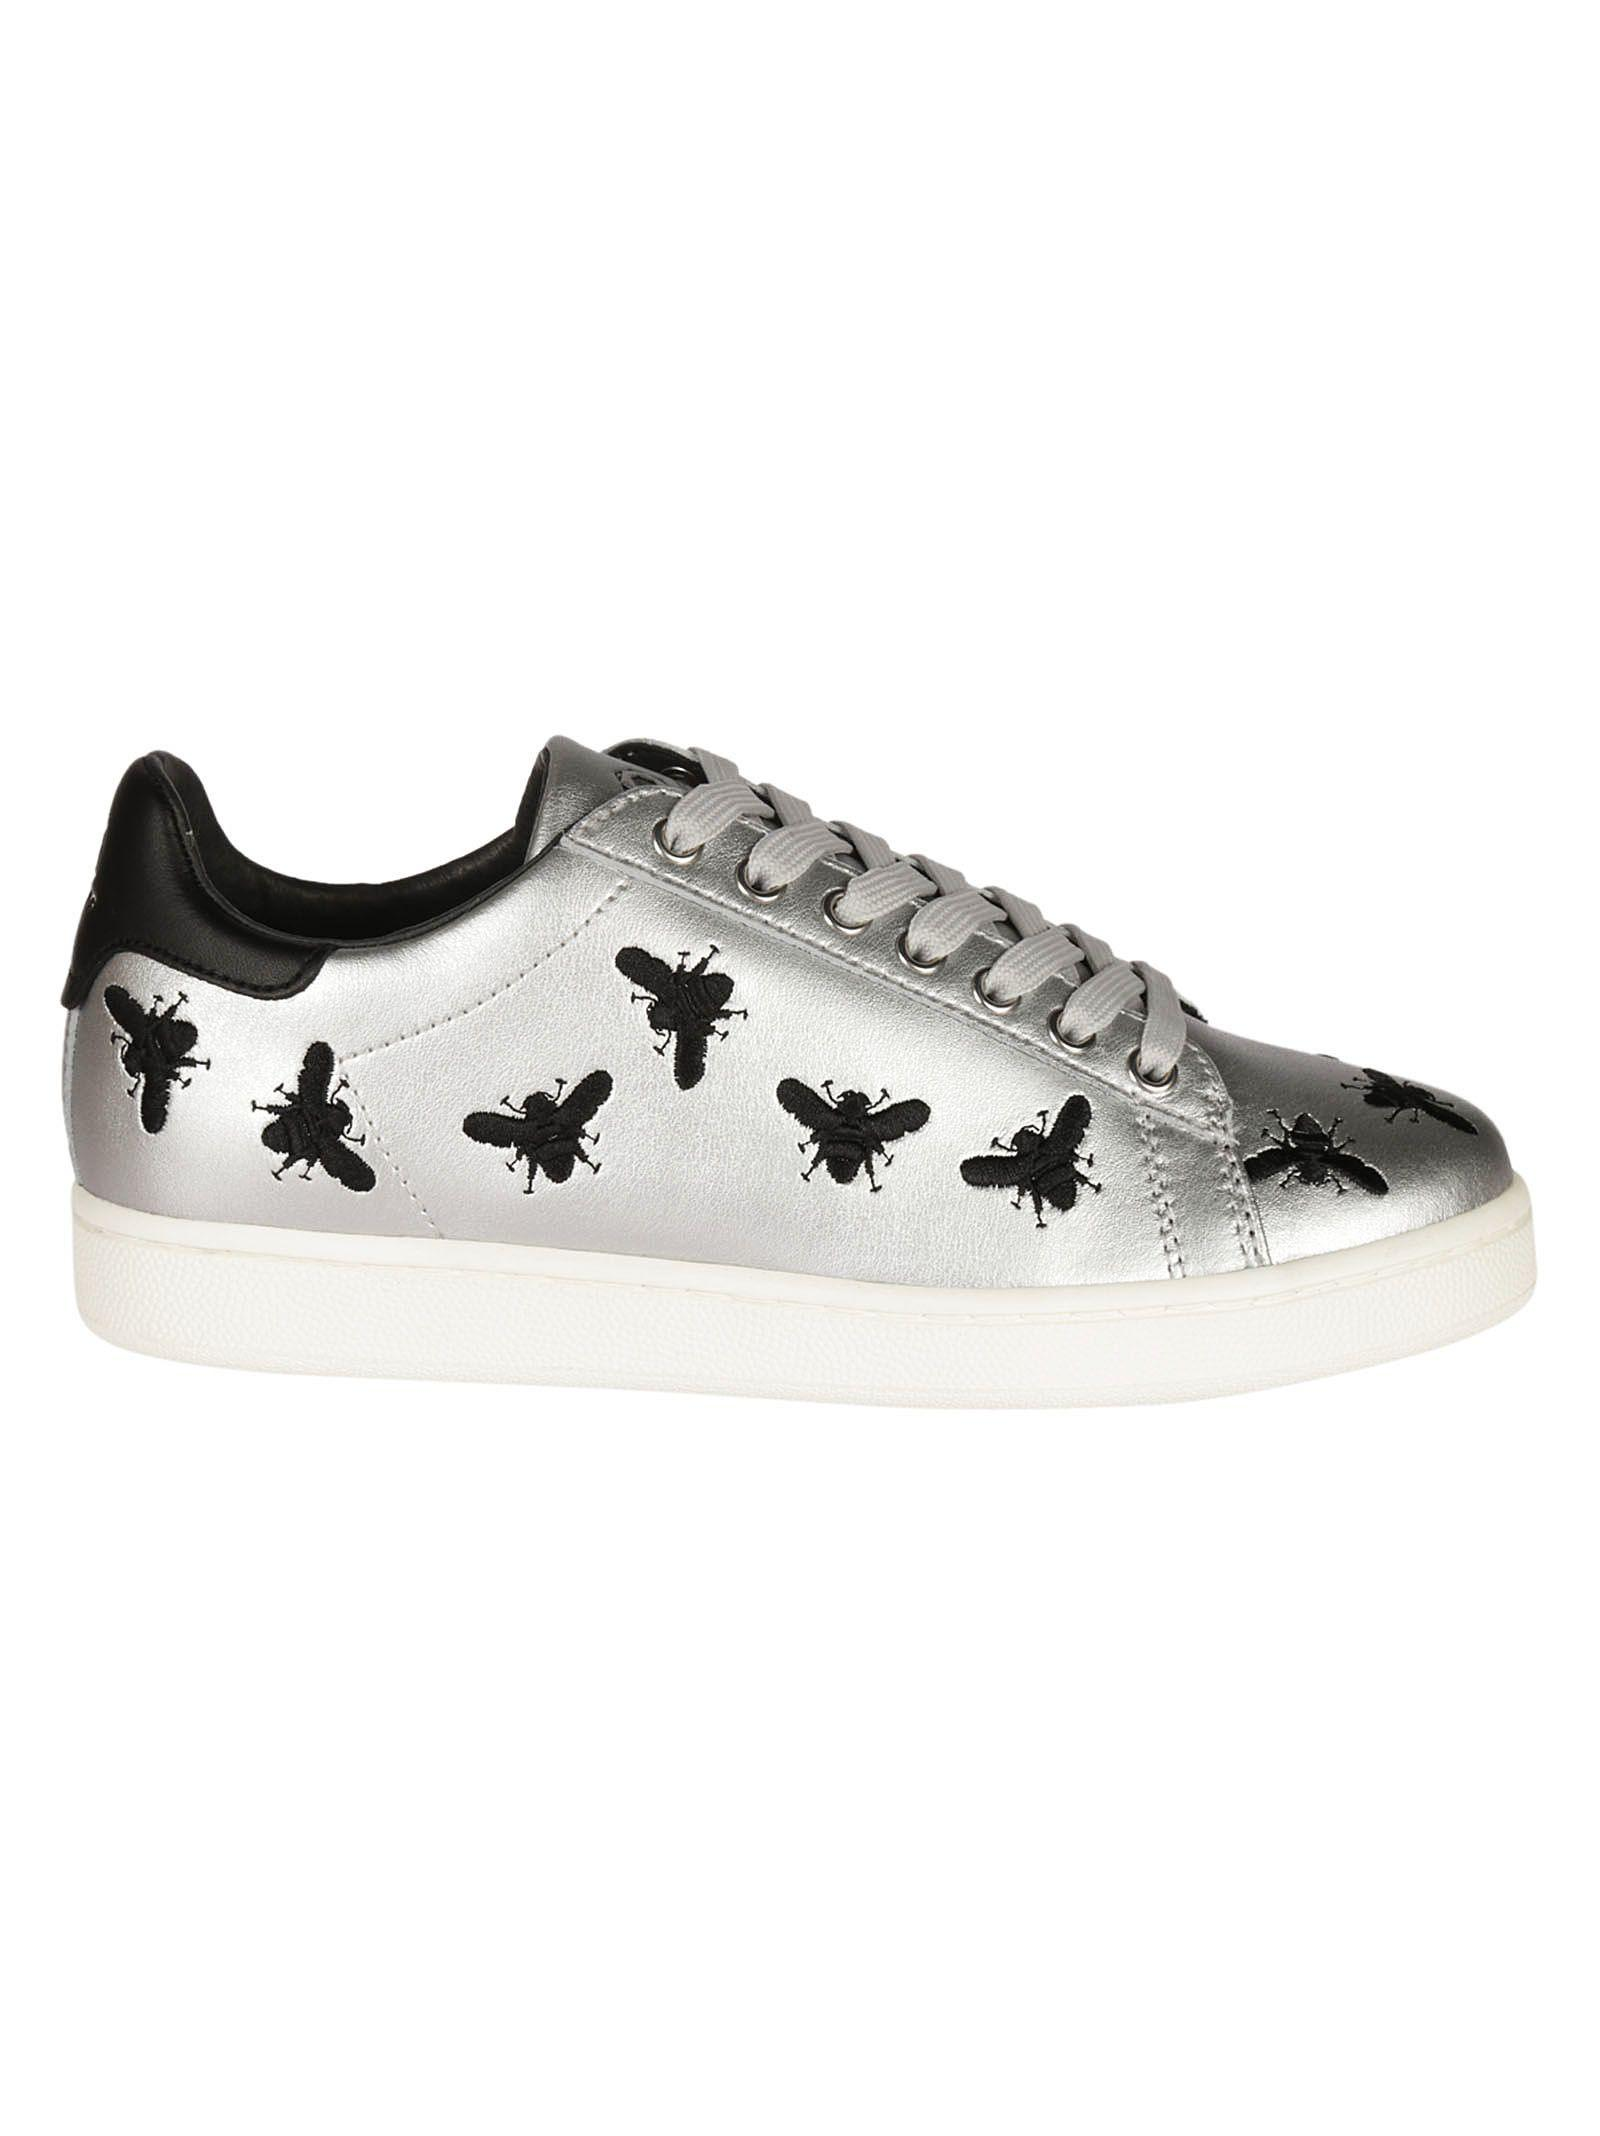 M.o.a. Fly Sneakers In Silver